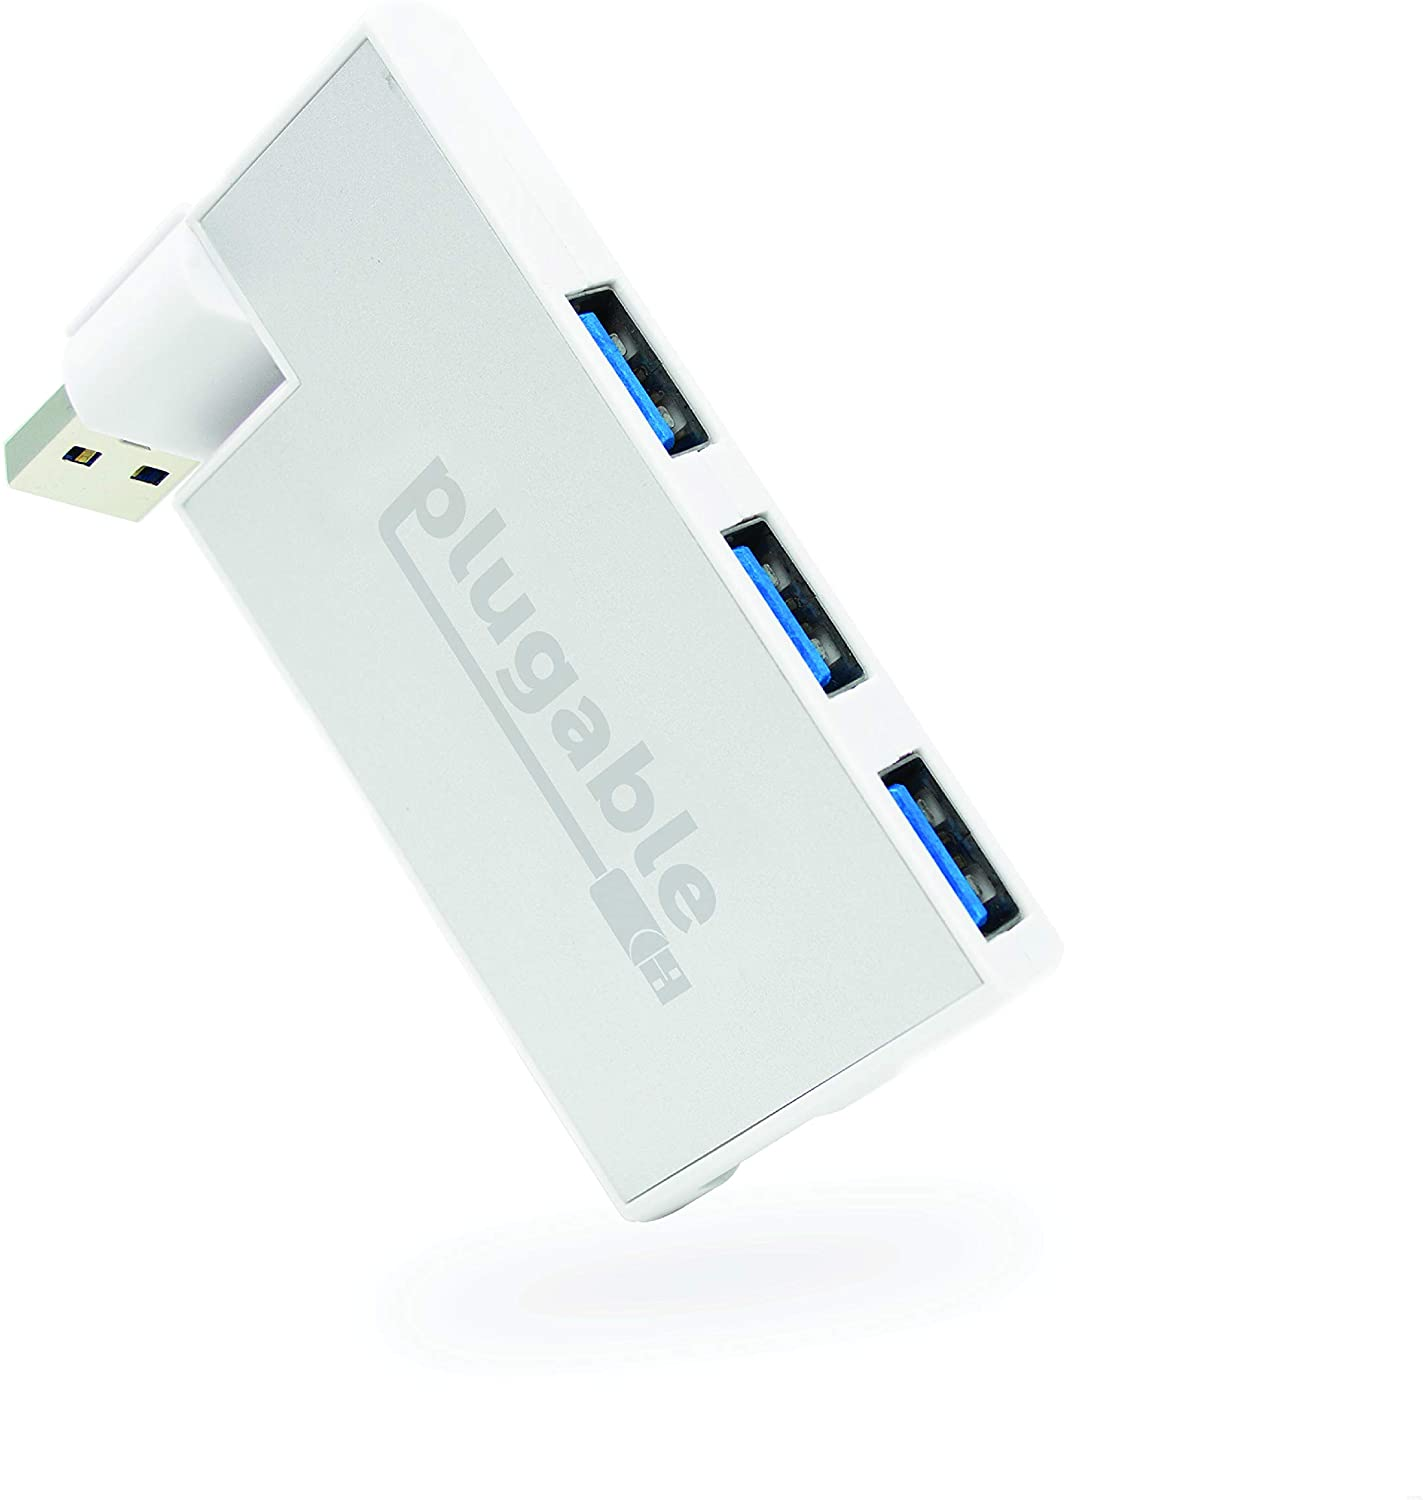 Amazon Com Plugable Usb Hub Rotating 4 Port Usb 3 0 Hub Powered Usb Hub Compatible With Windows Macos Linux Usb 2 0 Backwards Compatible Computers Accessories